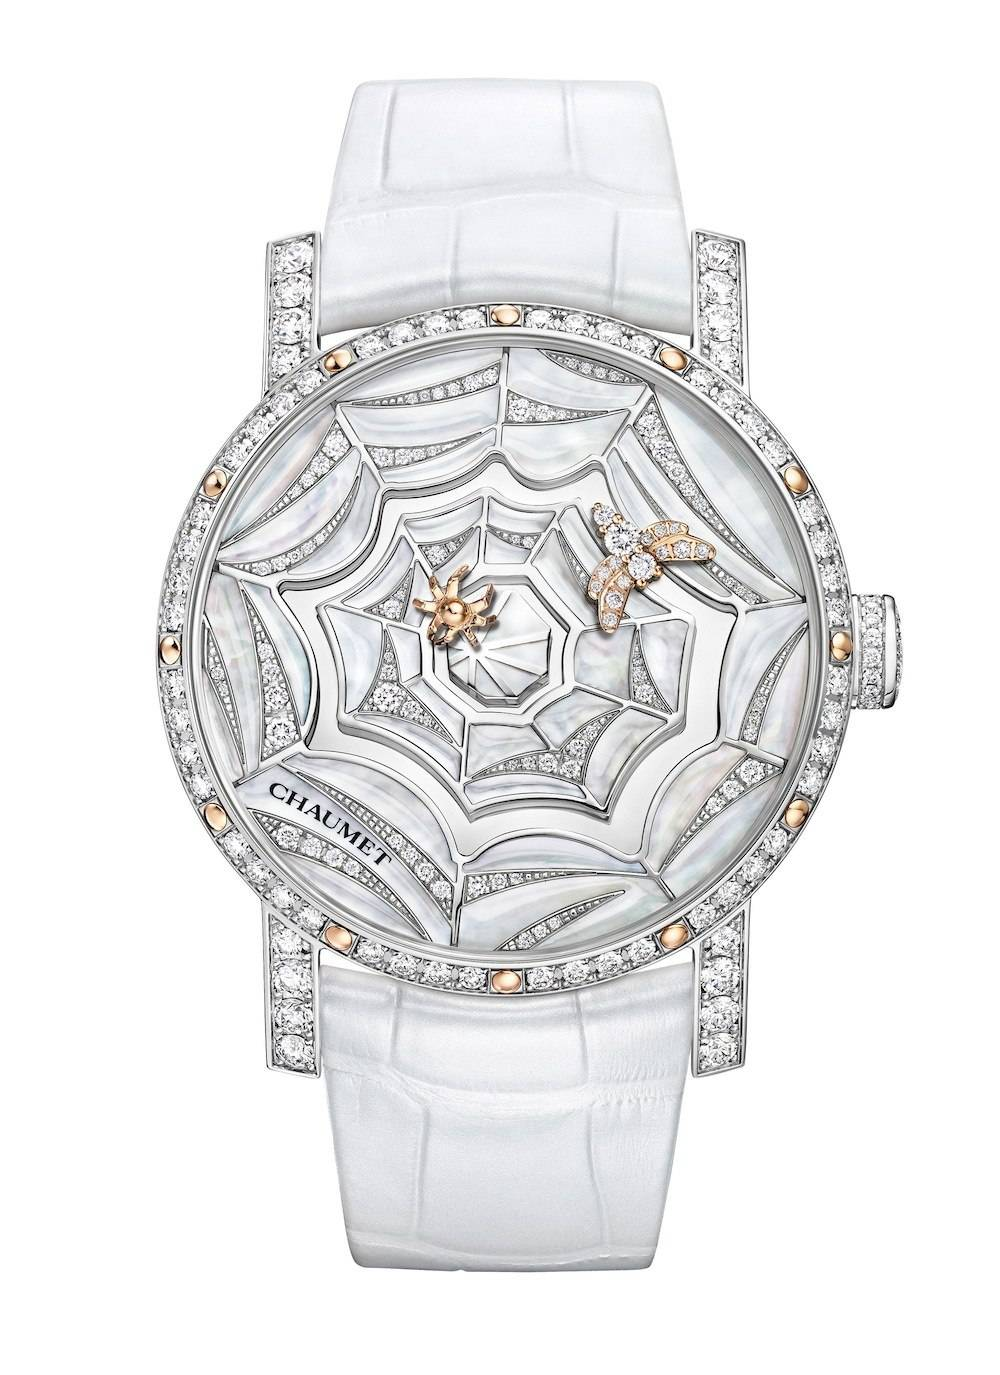 """The spider (hour hand) chases the bee (minute hand) around the dial on Chaumet's brilliant """"Atrape-Moi ... Si Tu M'Aimes"""" (Catch me if you can) center piece."""